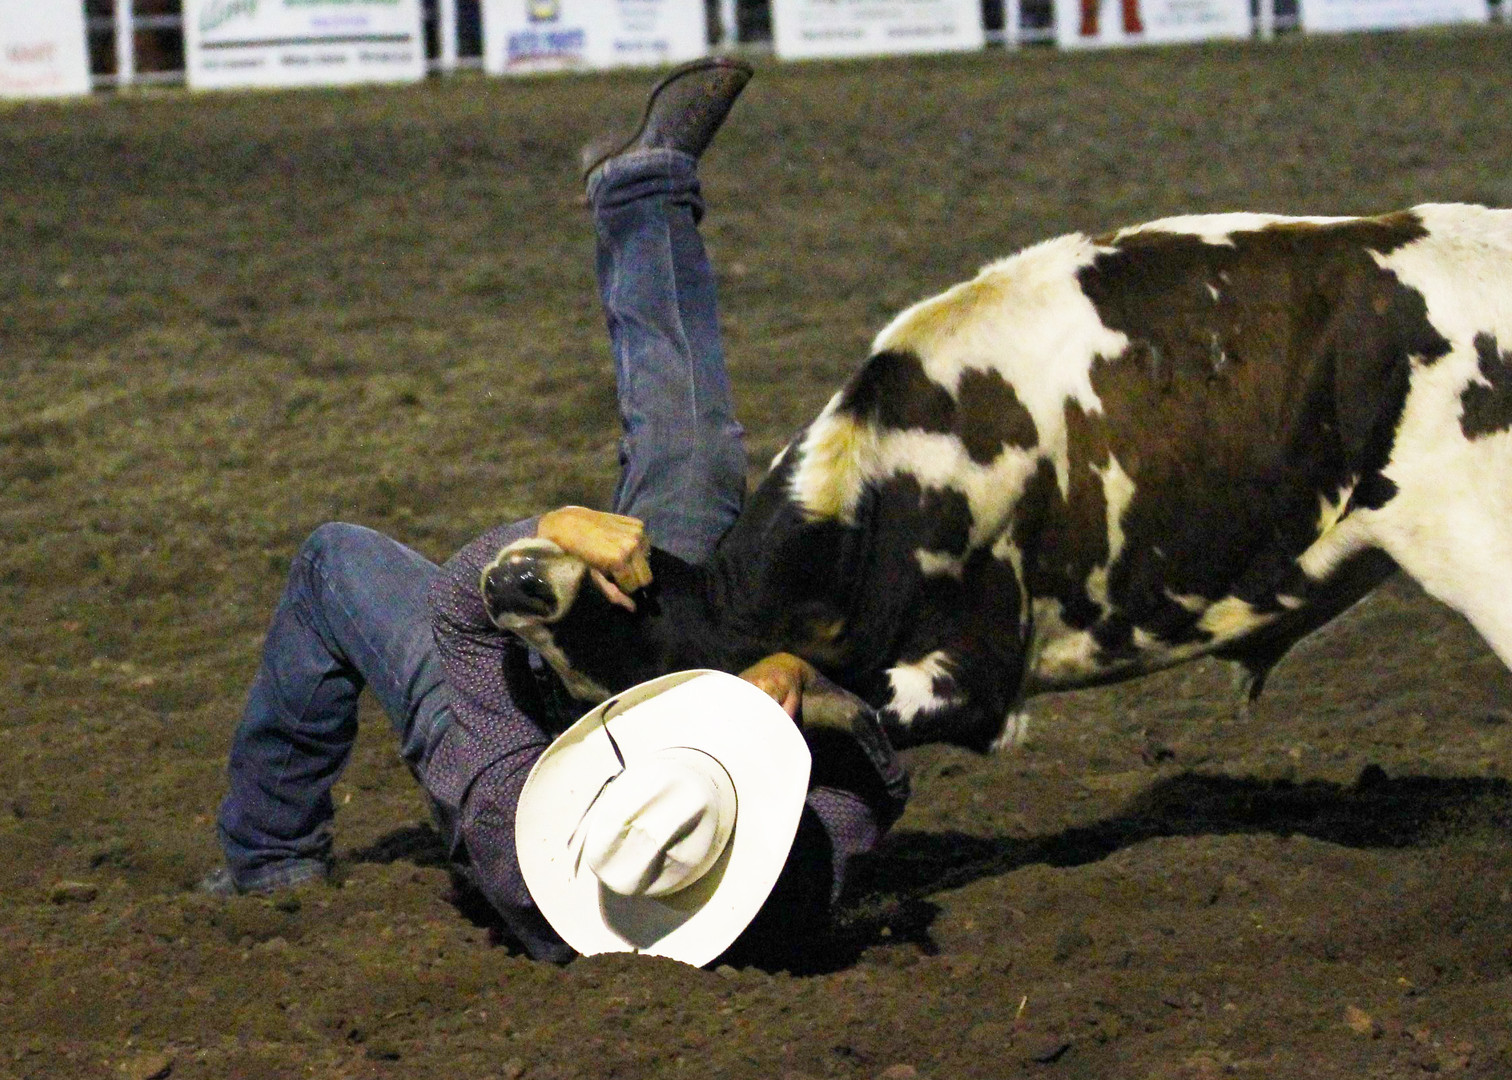 No 3 Steer Wrestler IMG_1211 (2).jpg